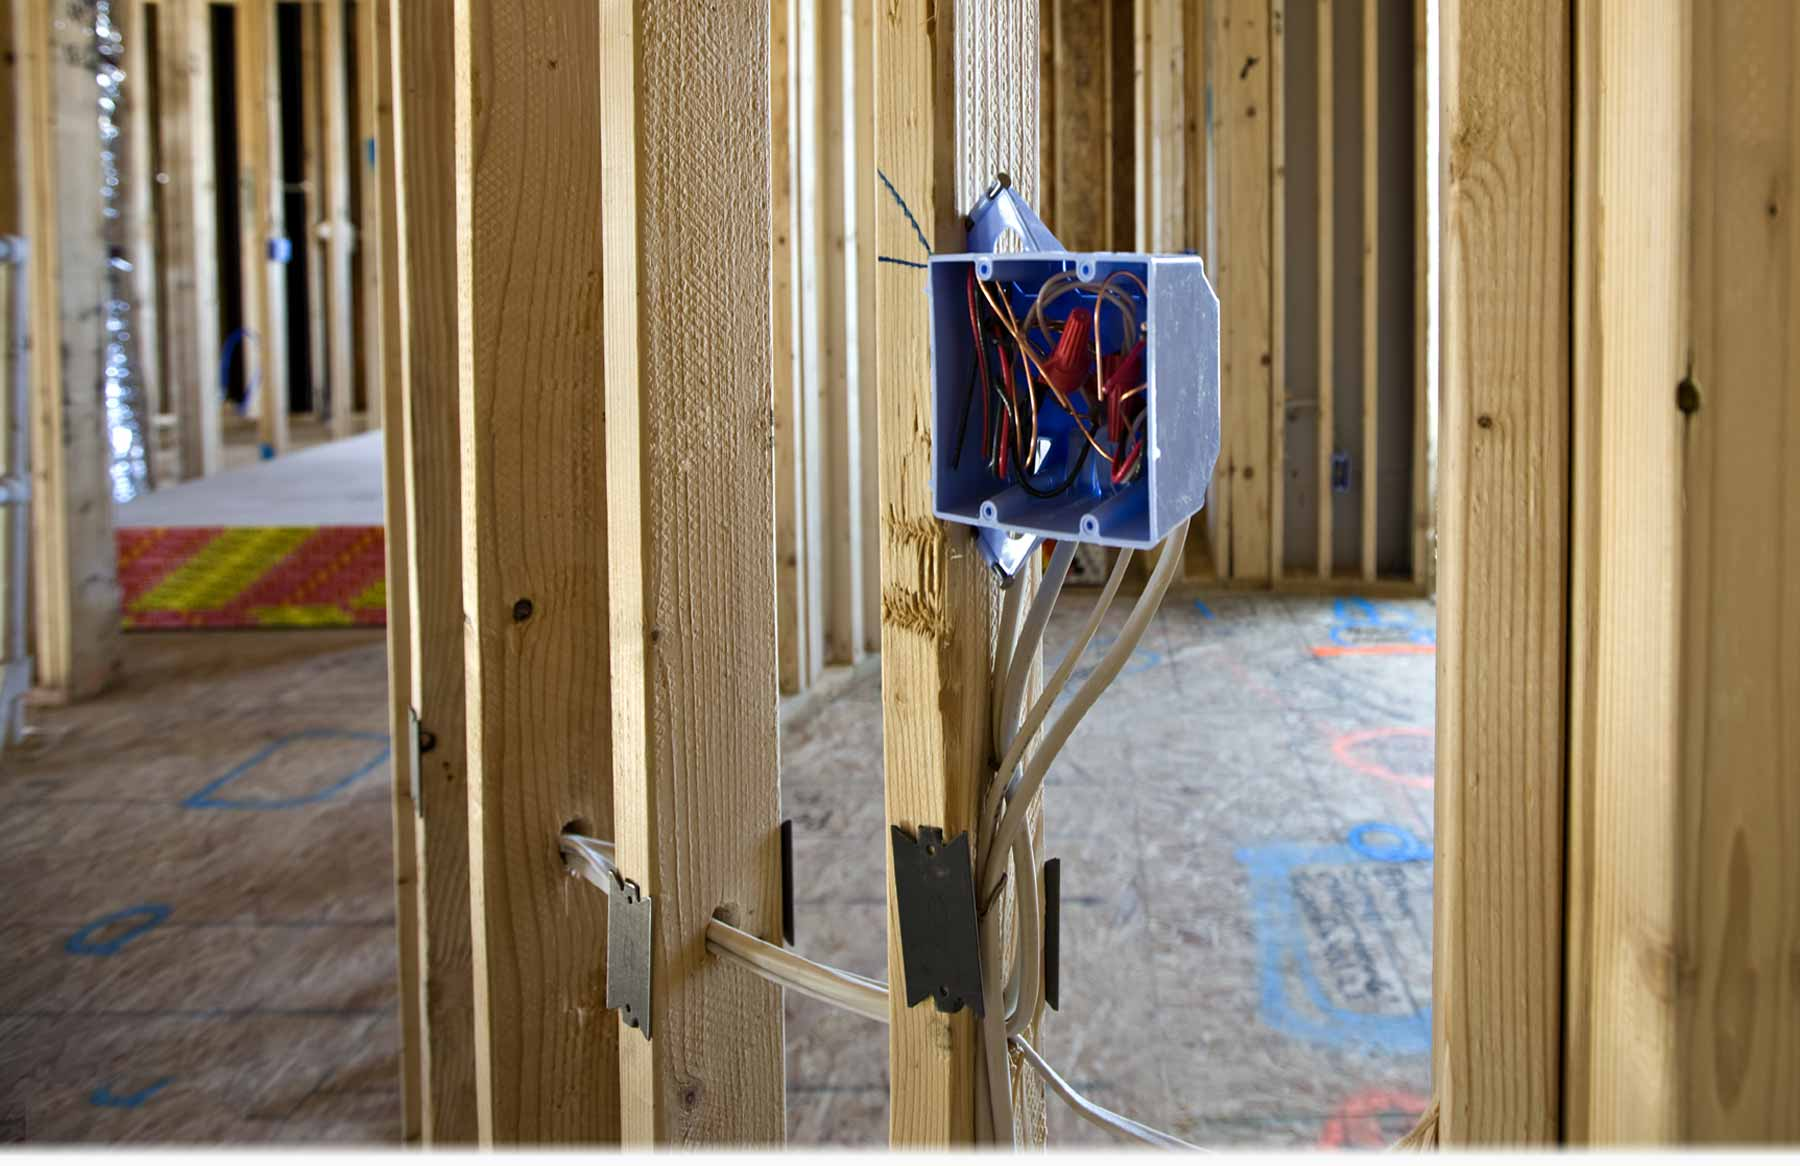 outlet_install_wiring_framing_construction4